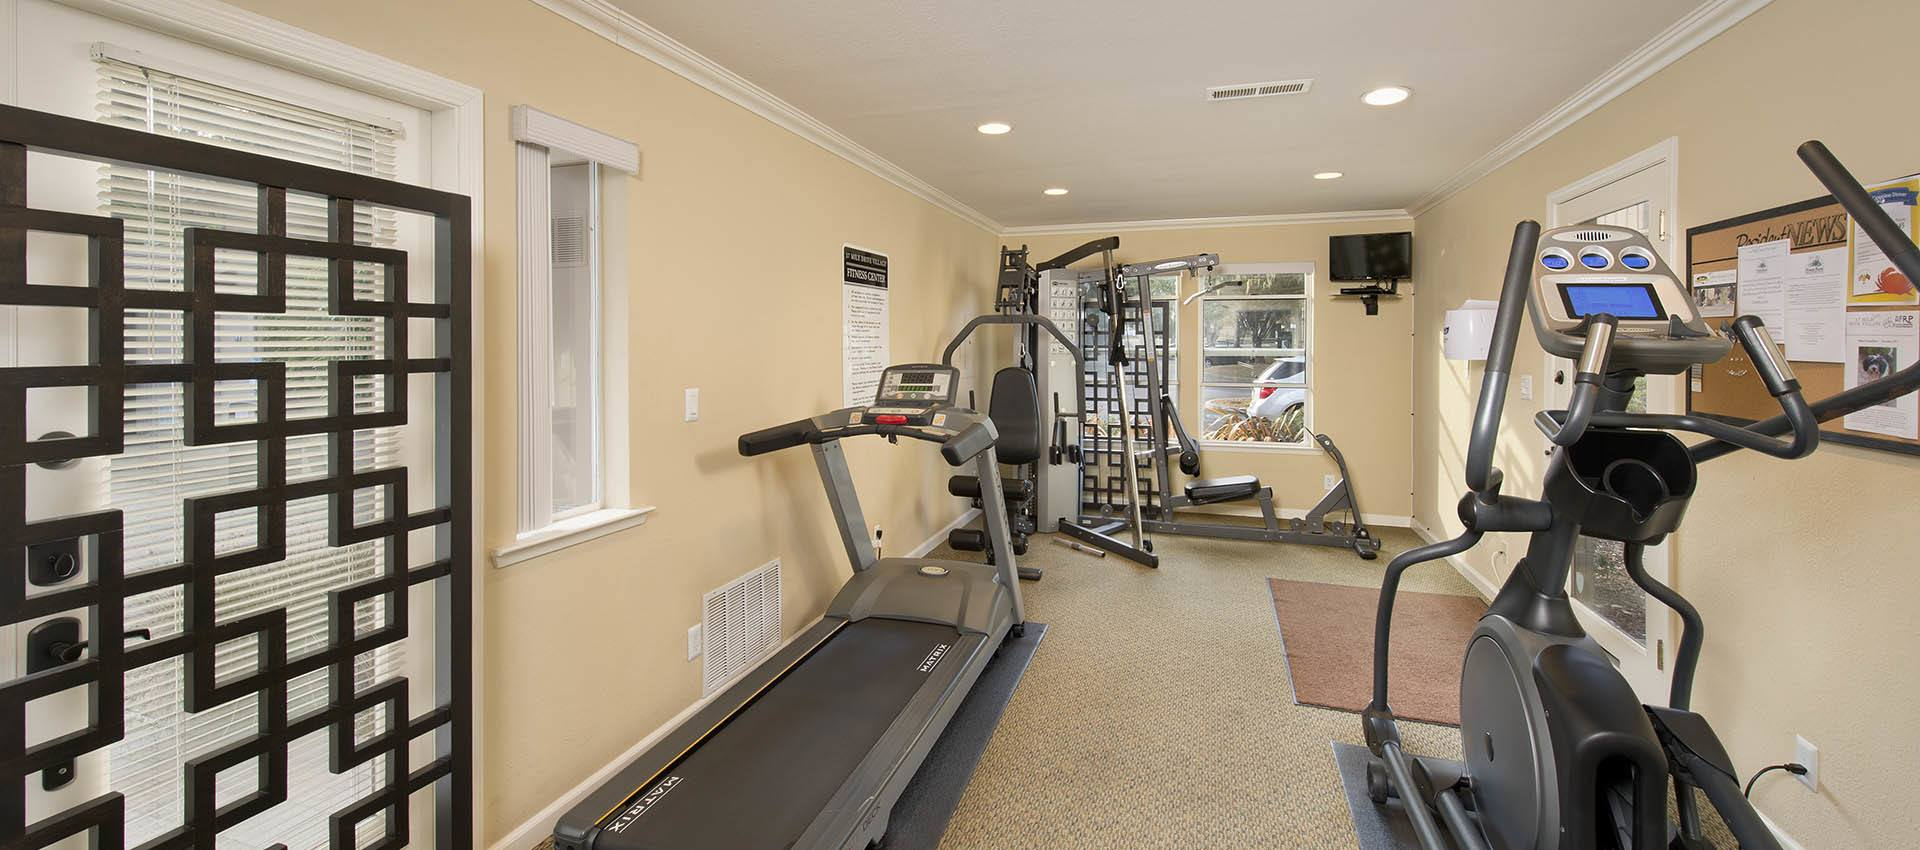 Fitness Center at Seventeen Mile Drive Village Apartment Homes in Pacific Grove